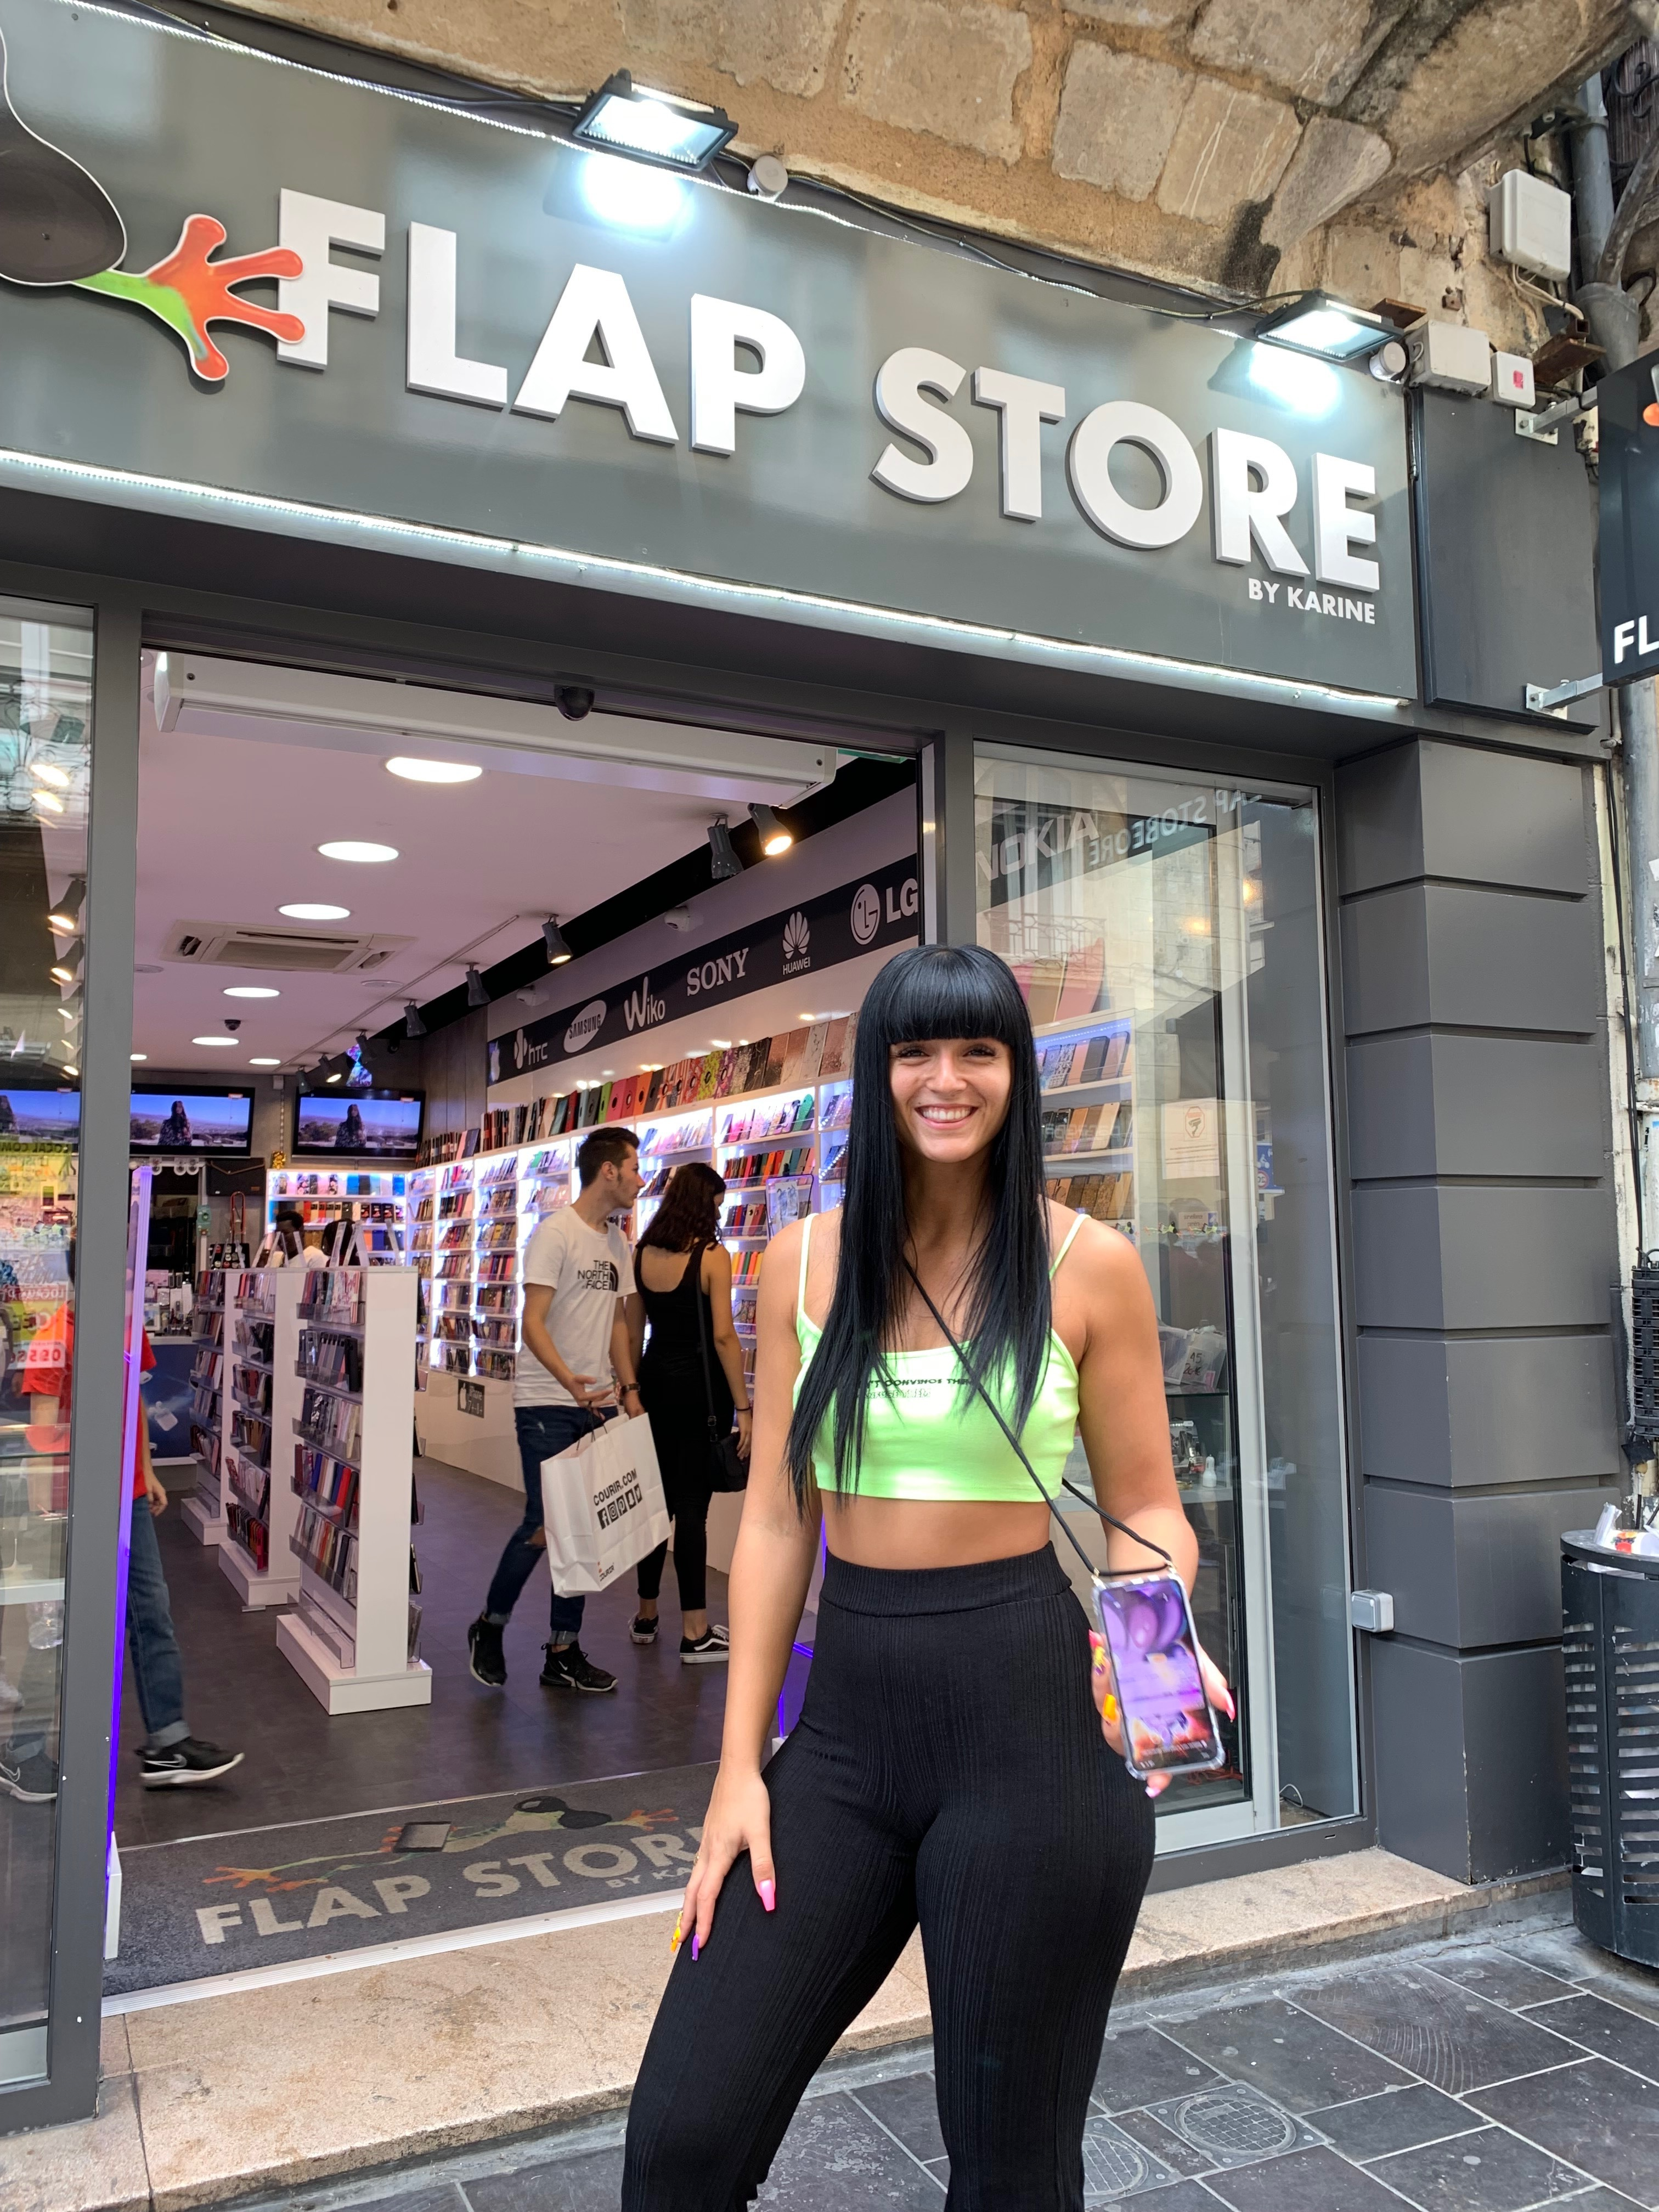 Galerie d'image - FLAP STORE BY KARINE